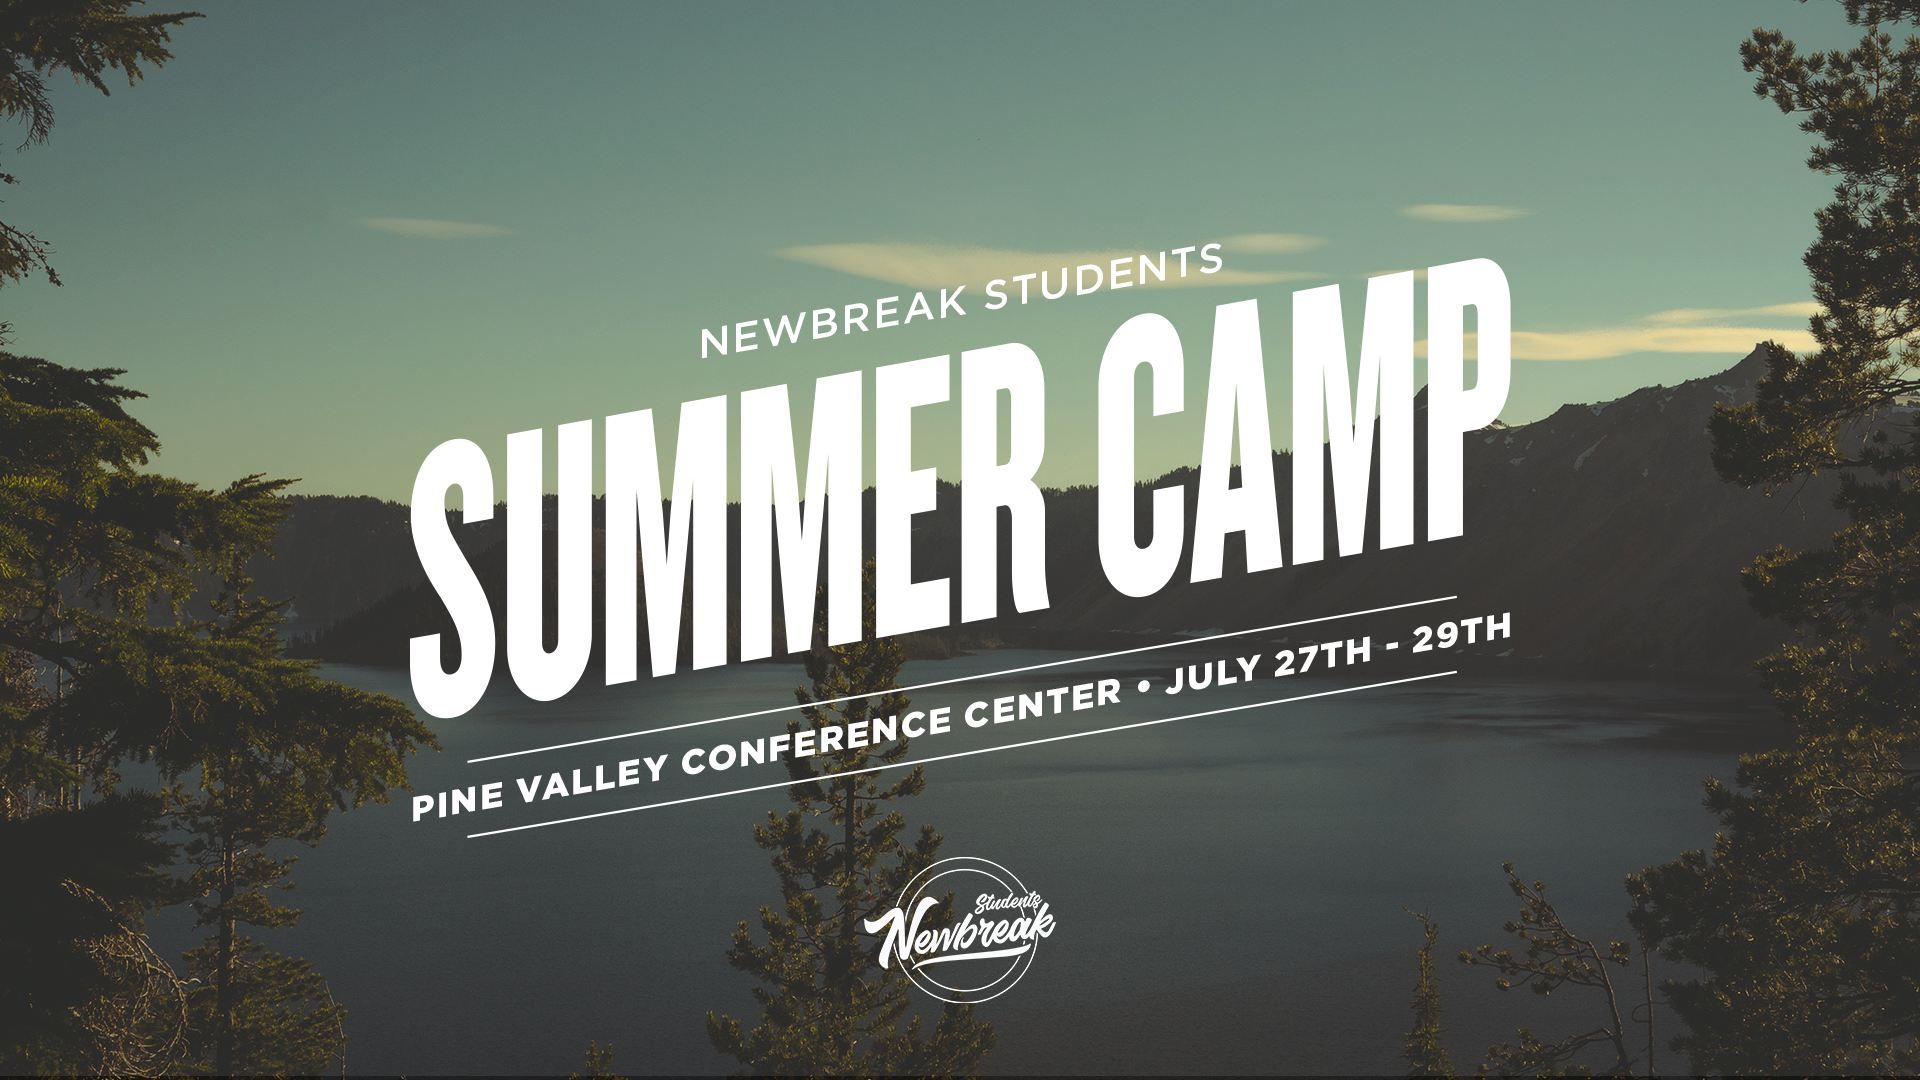 Students summer camp